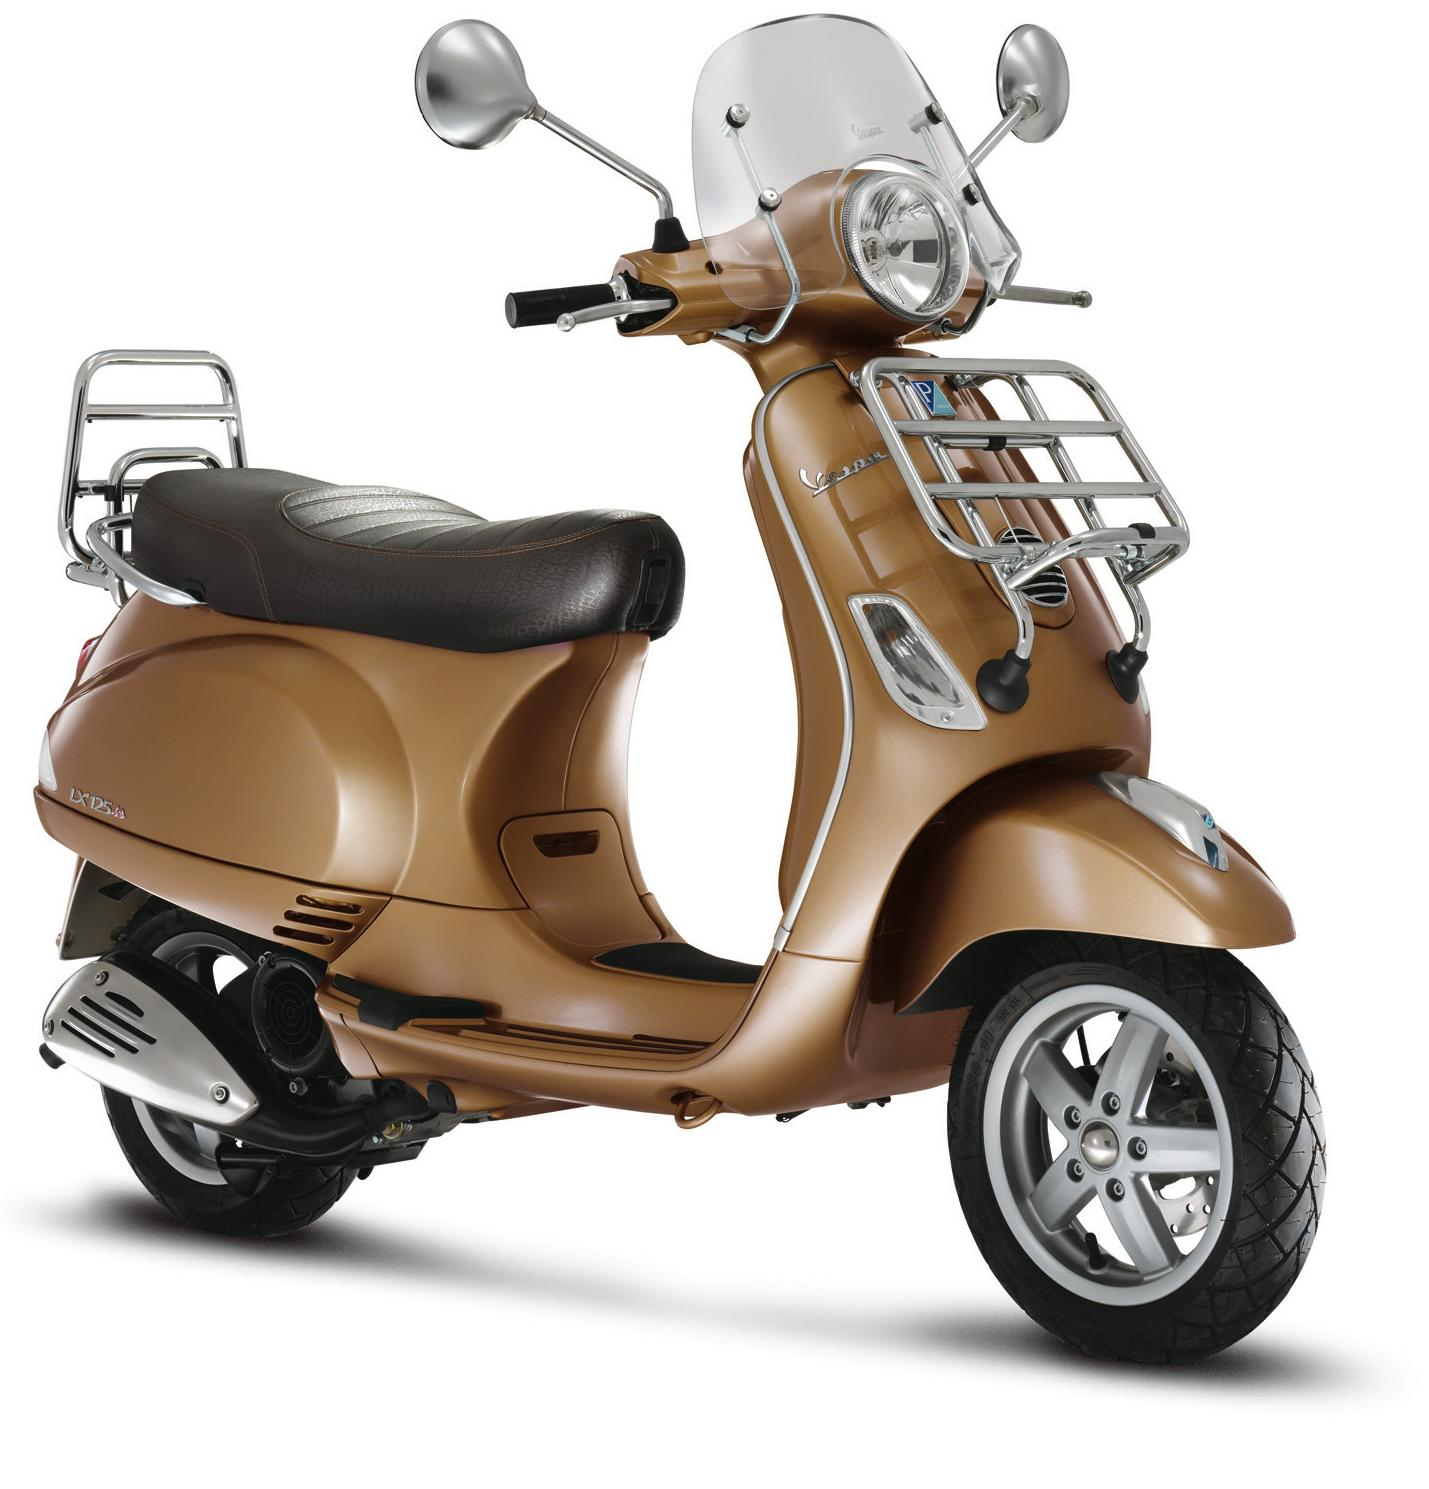 2007 vespa lx 50 4t pics specs and information. Black Bedroom Furniture Sets. Home Design Ideas